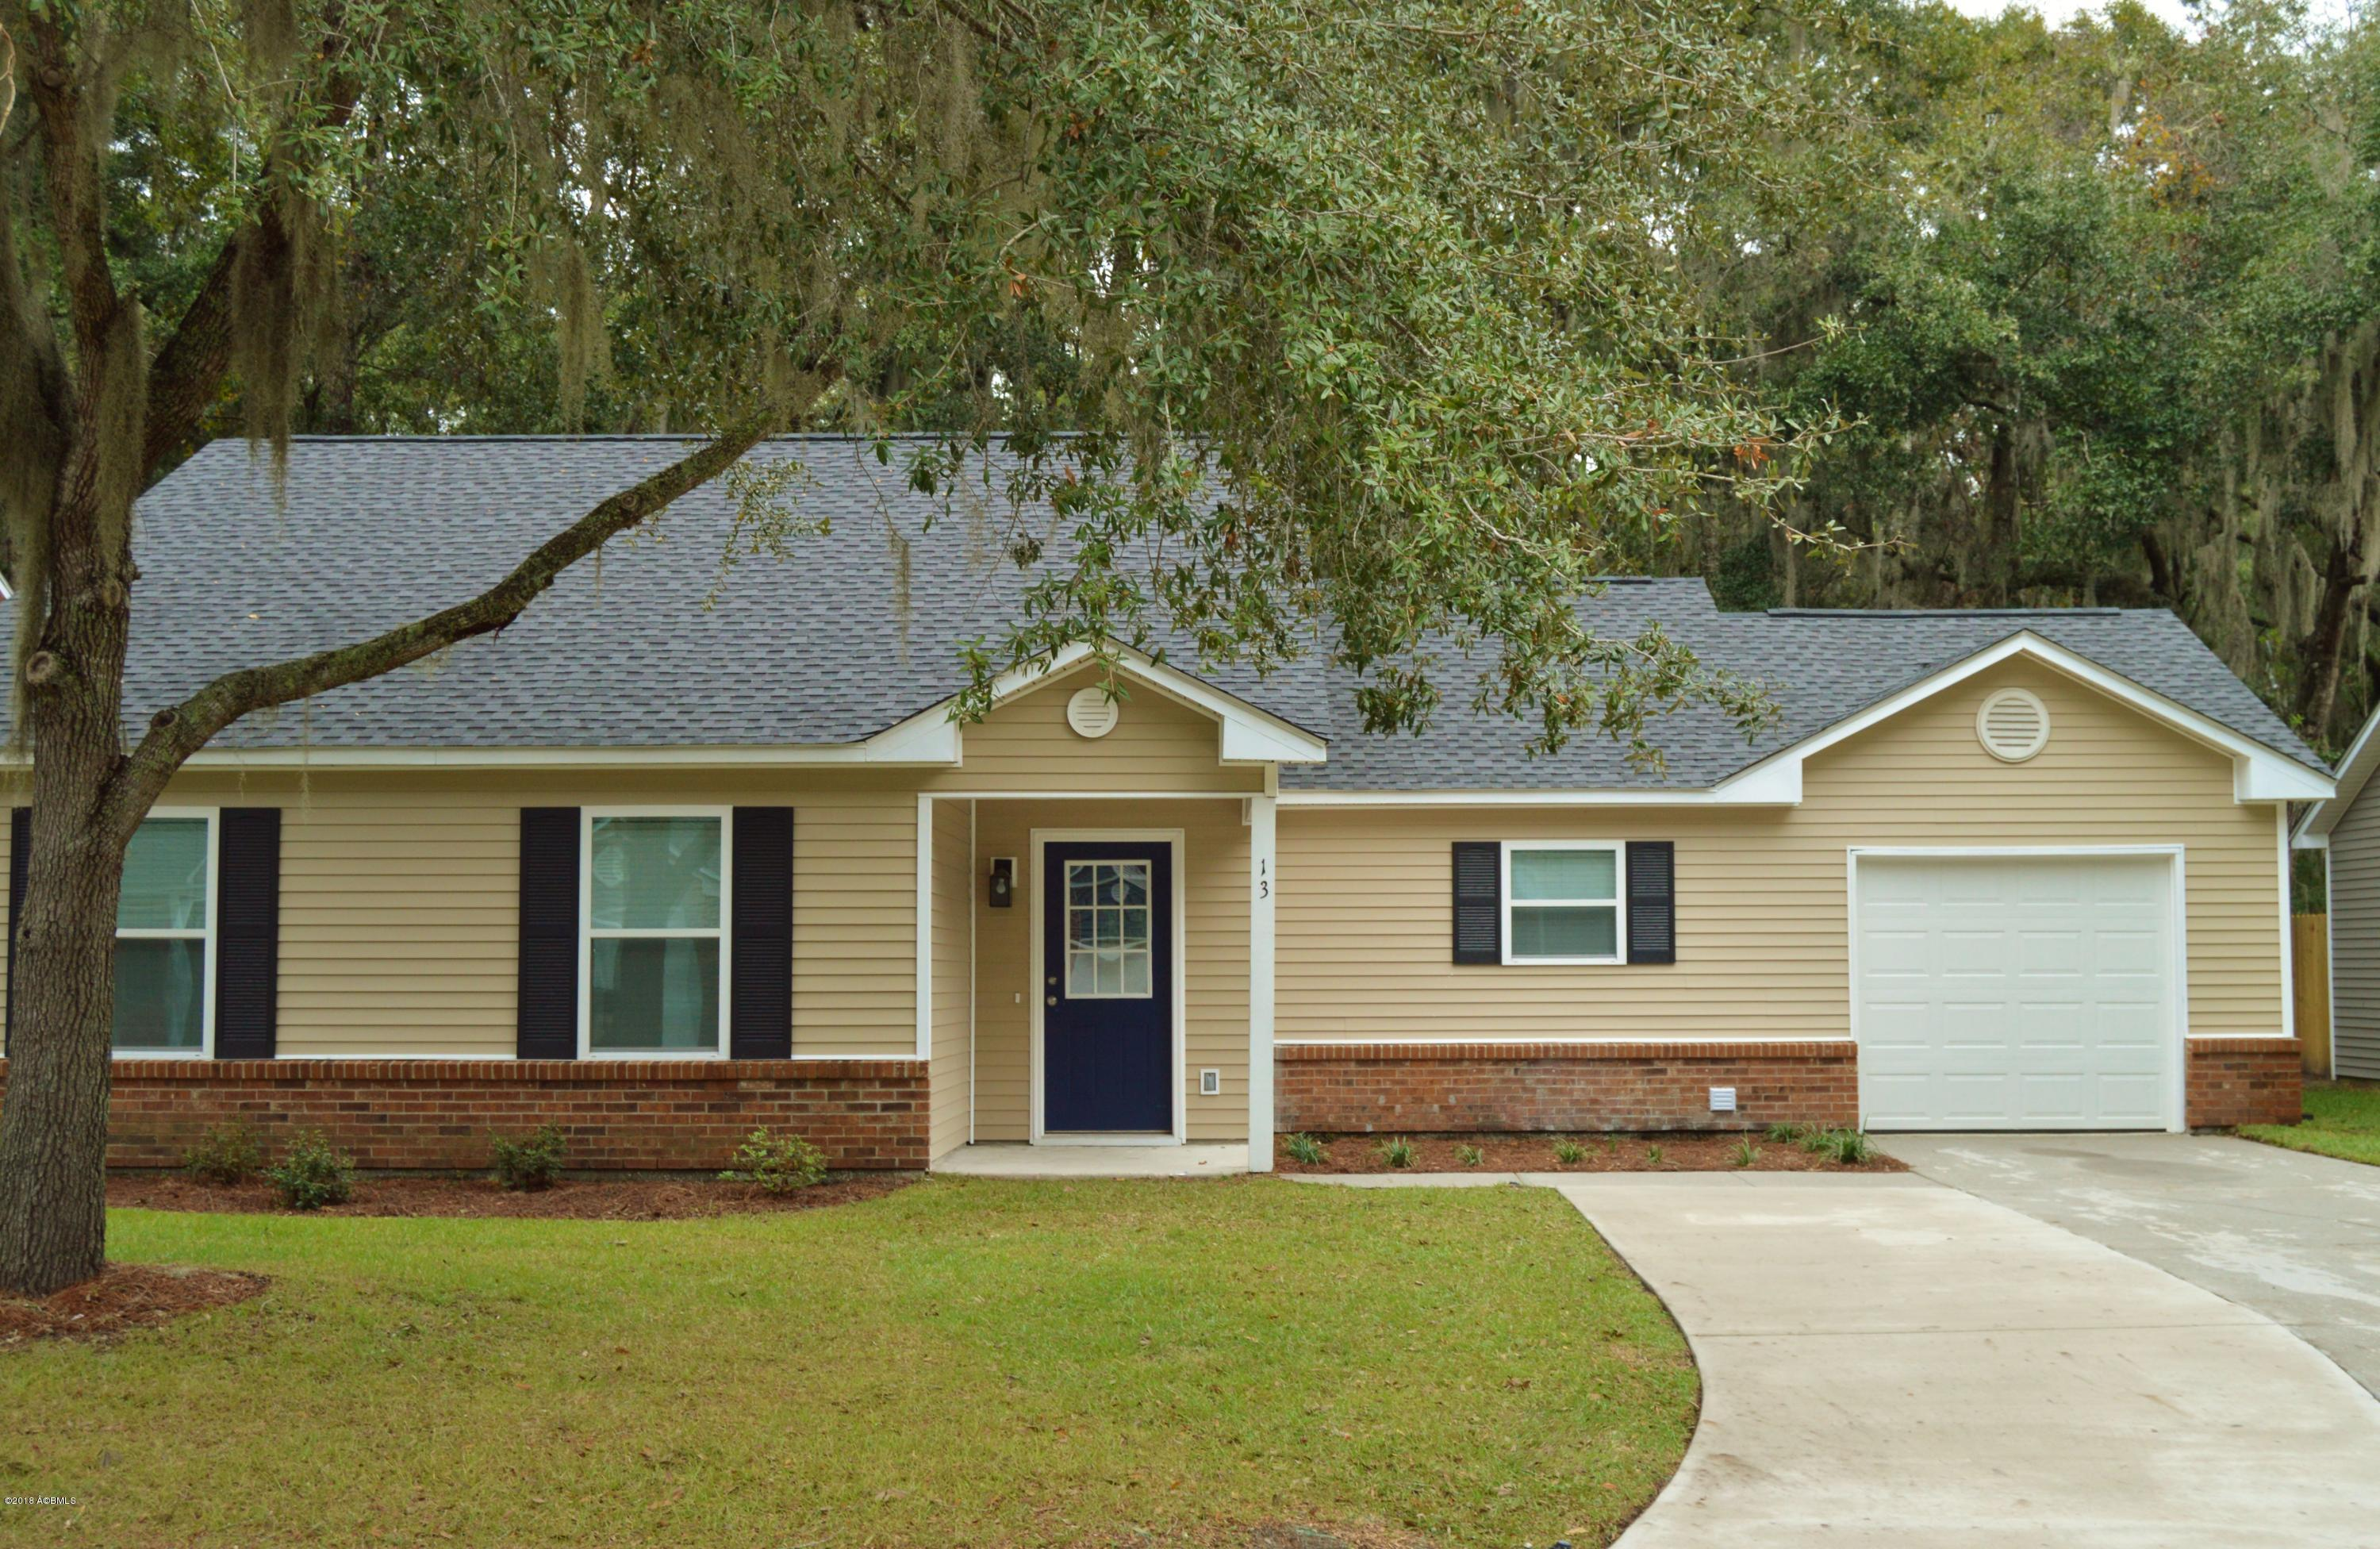 Photo of 13 Brindlewood Drive, Beaufort, SC 29907